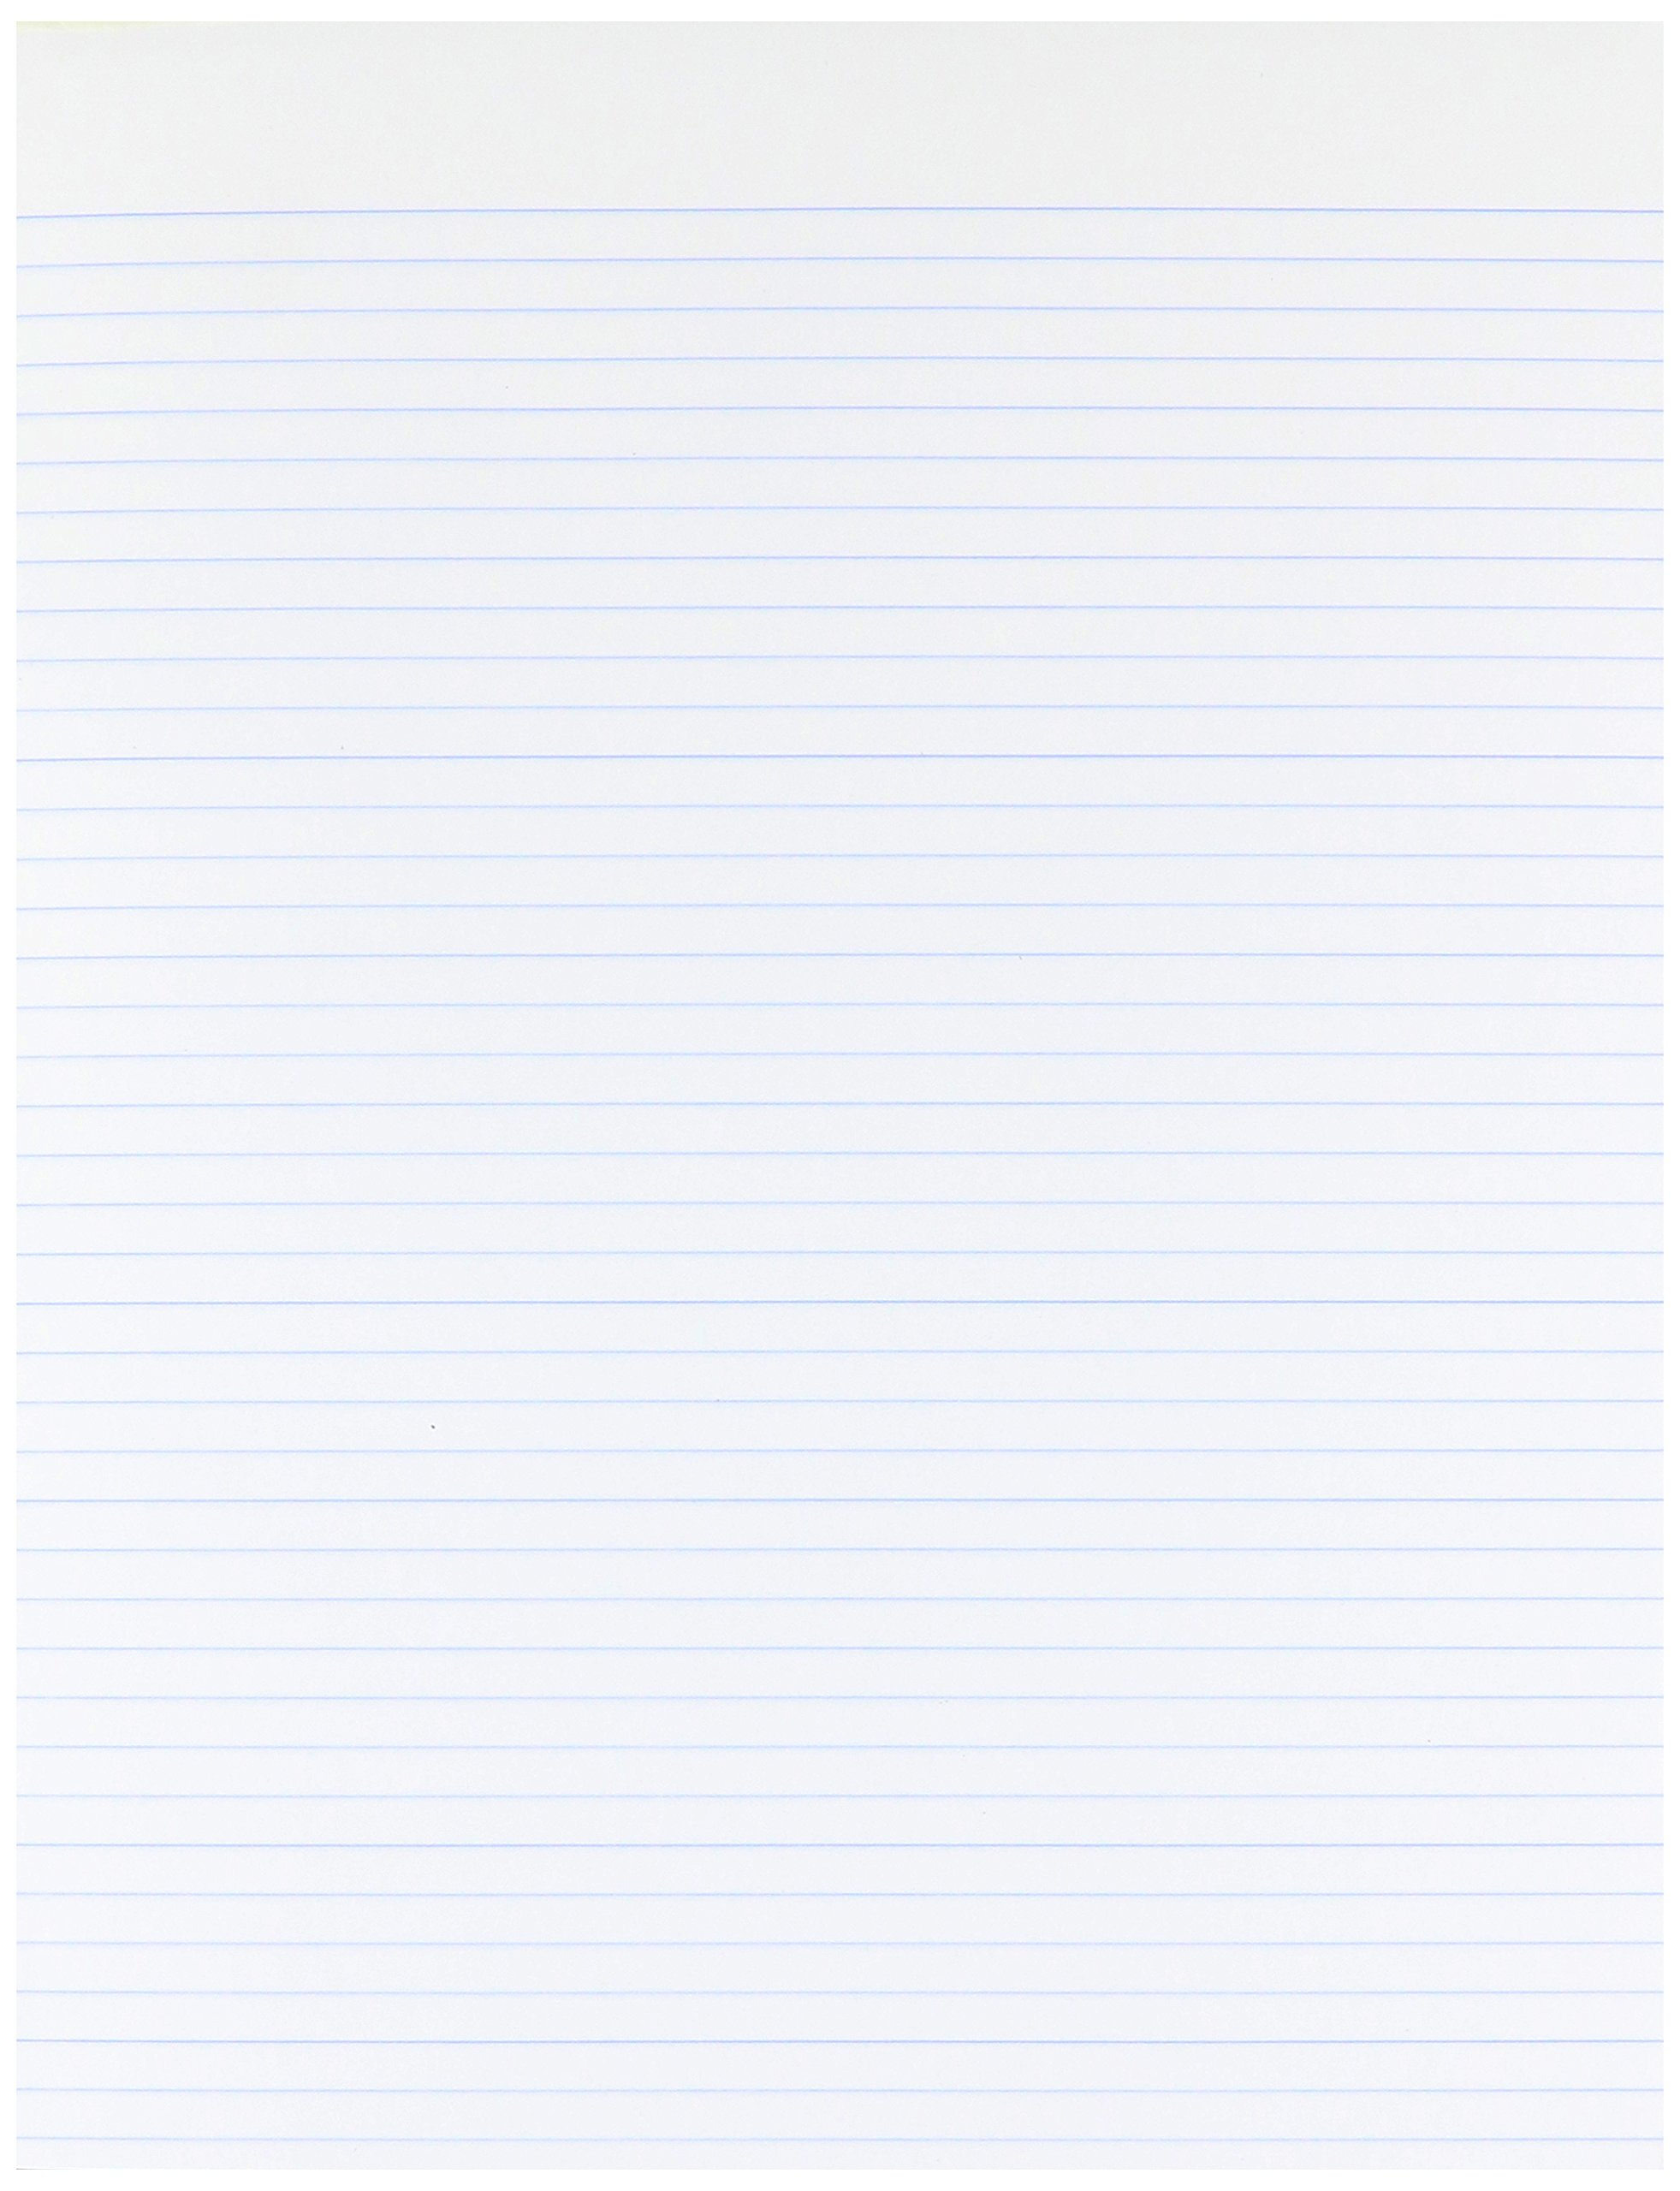 Ampad Evidence Glue Top 8-1/211 Pads, Narrow Rule, White, 50 Sheets, Dozen (21-118) by Ampad